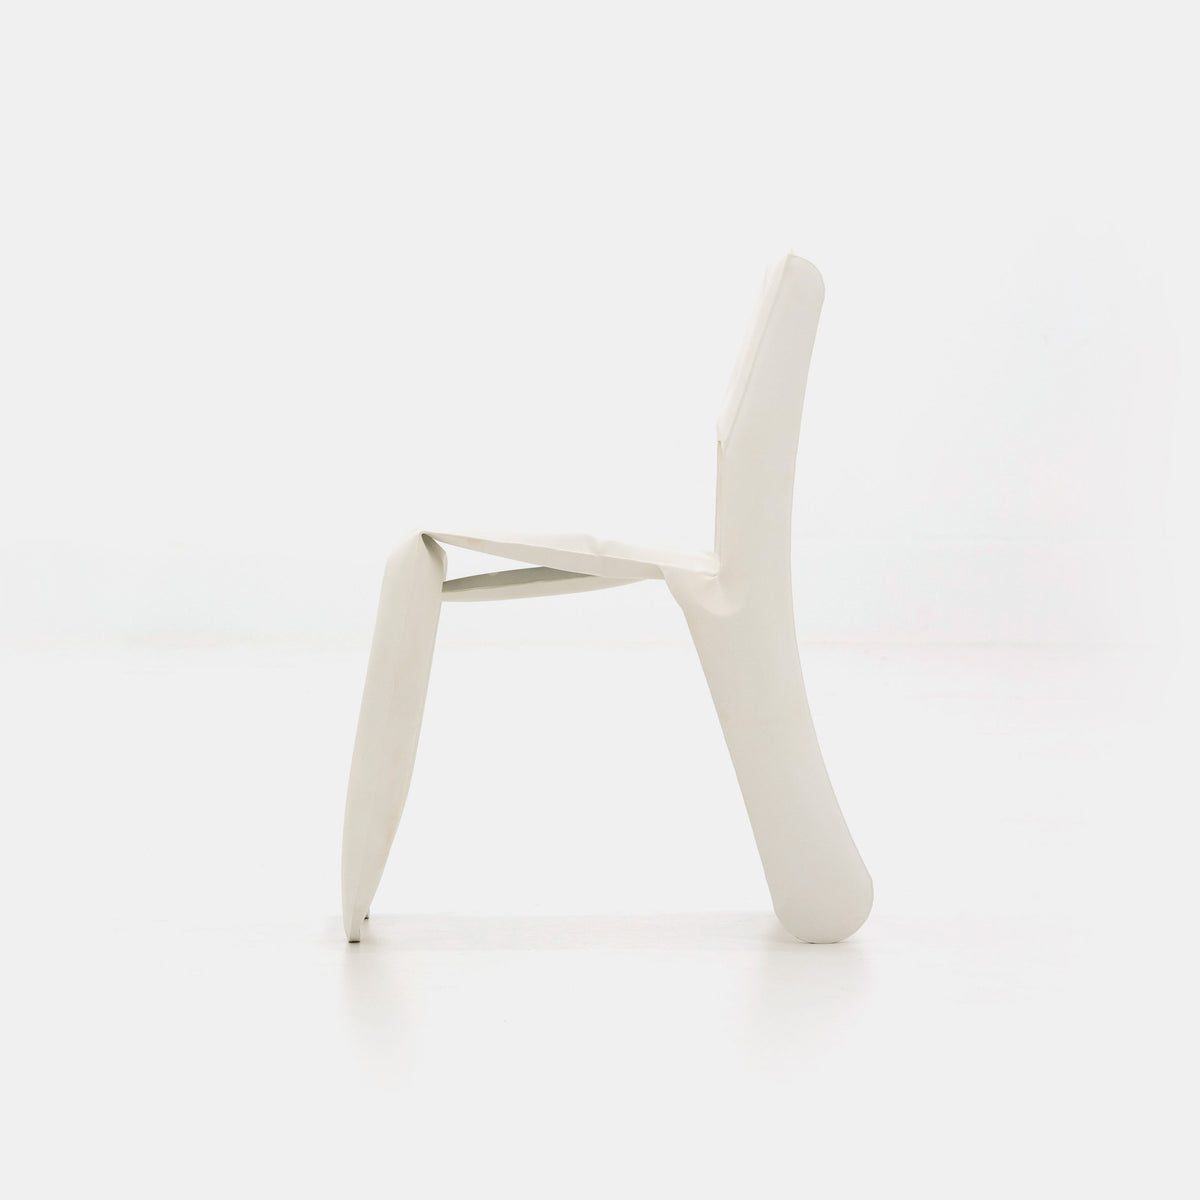 Chippensteel Chair 0.5 - Monologue London